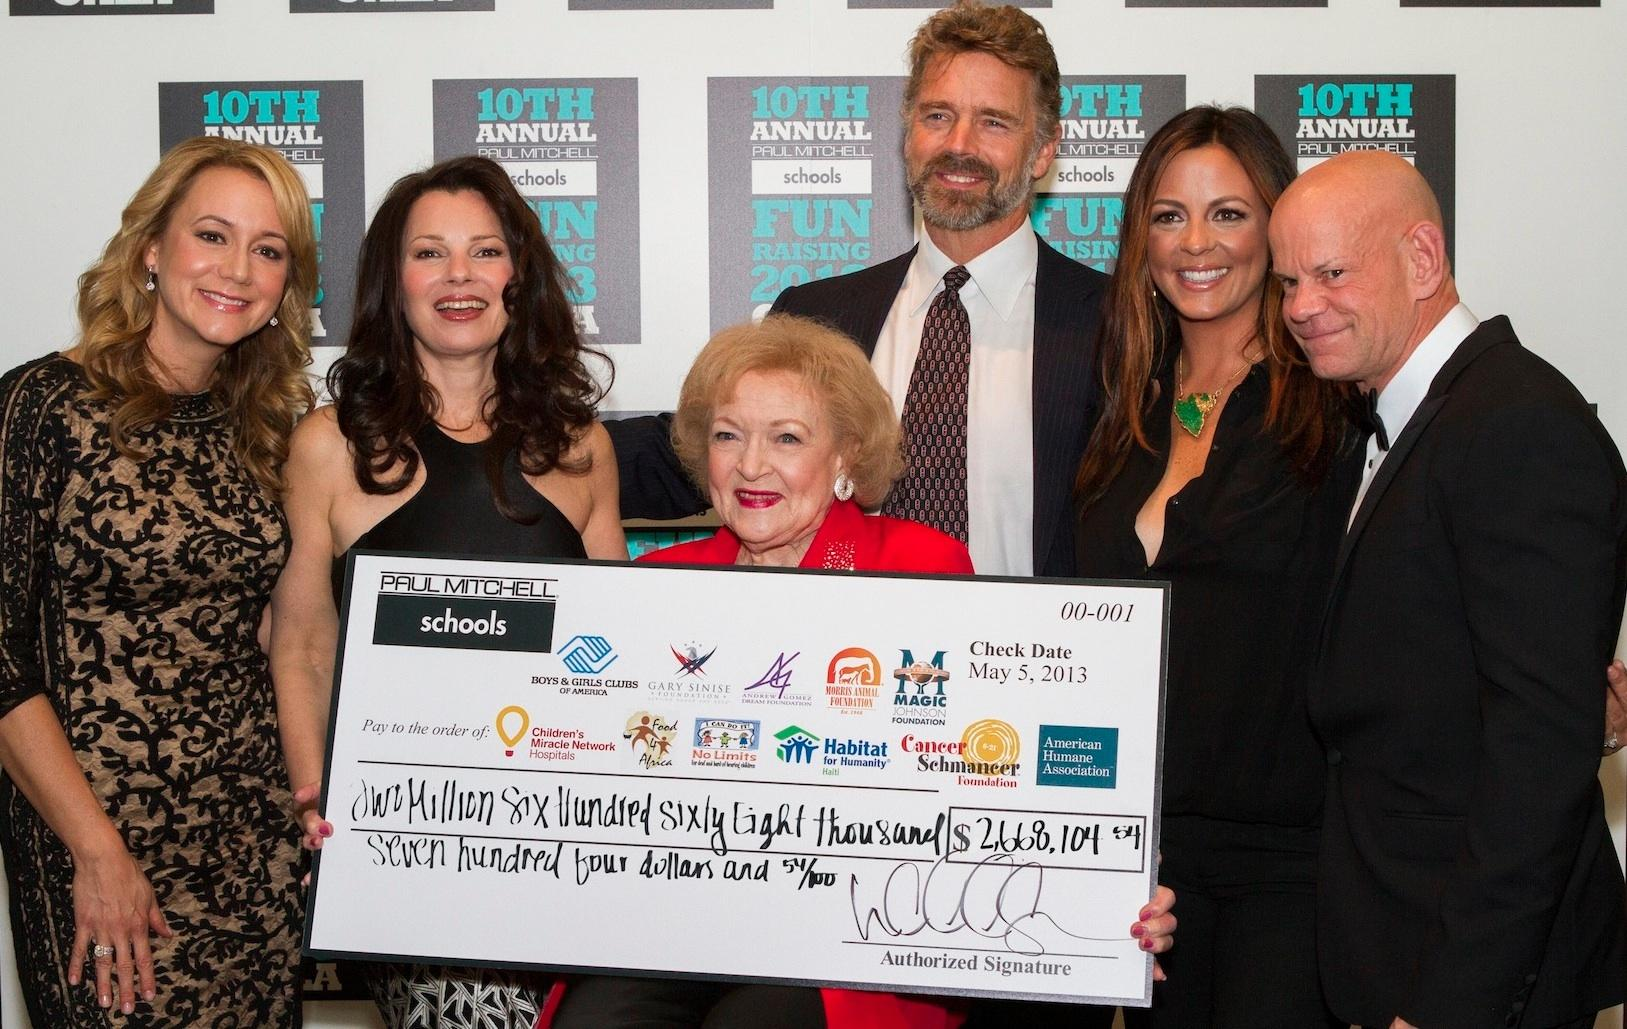 About The Paul Mitchell Schools Funraising Campaign